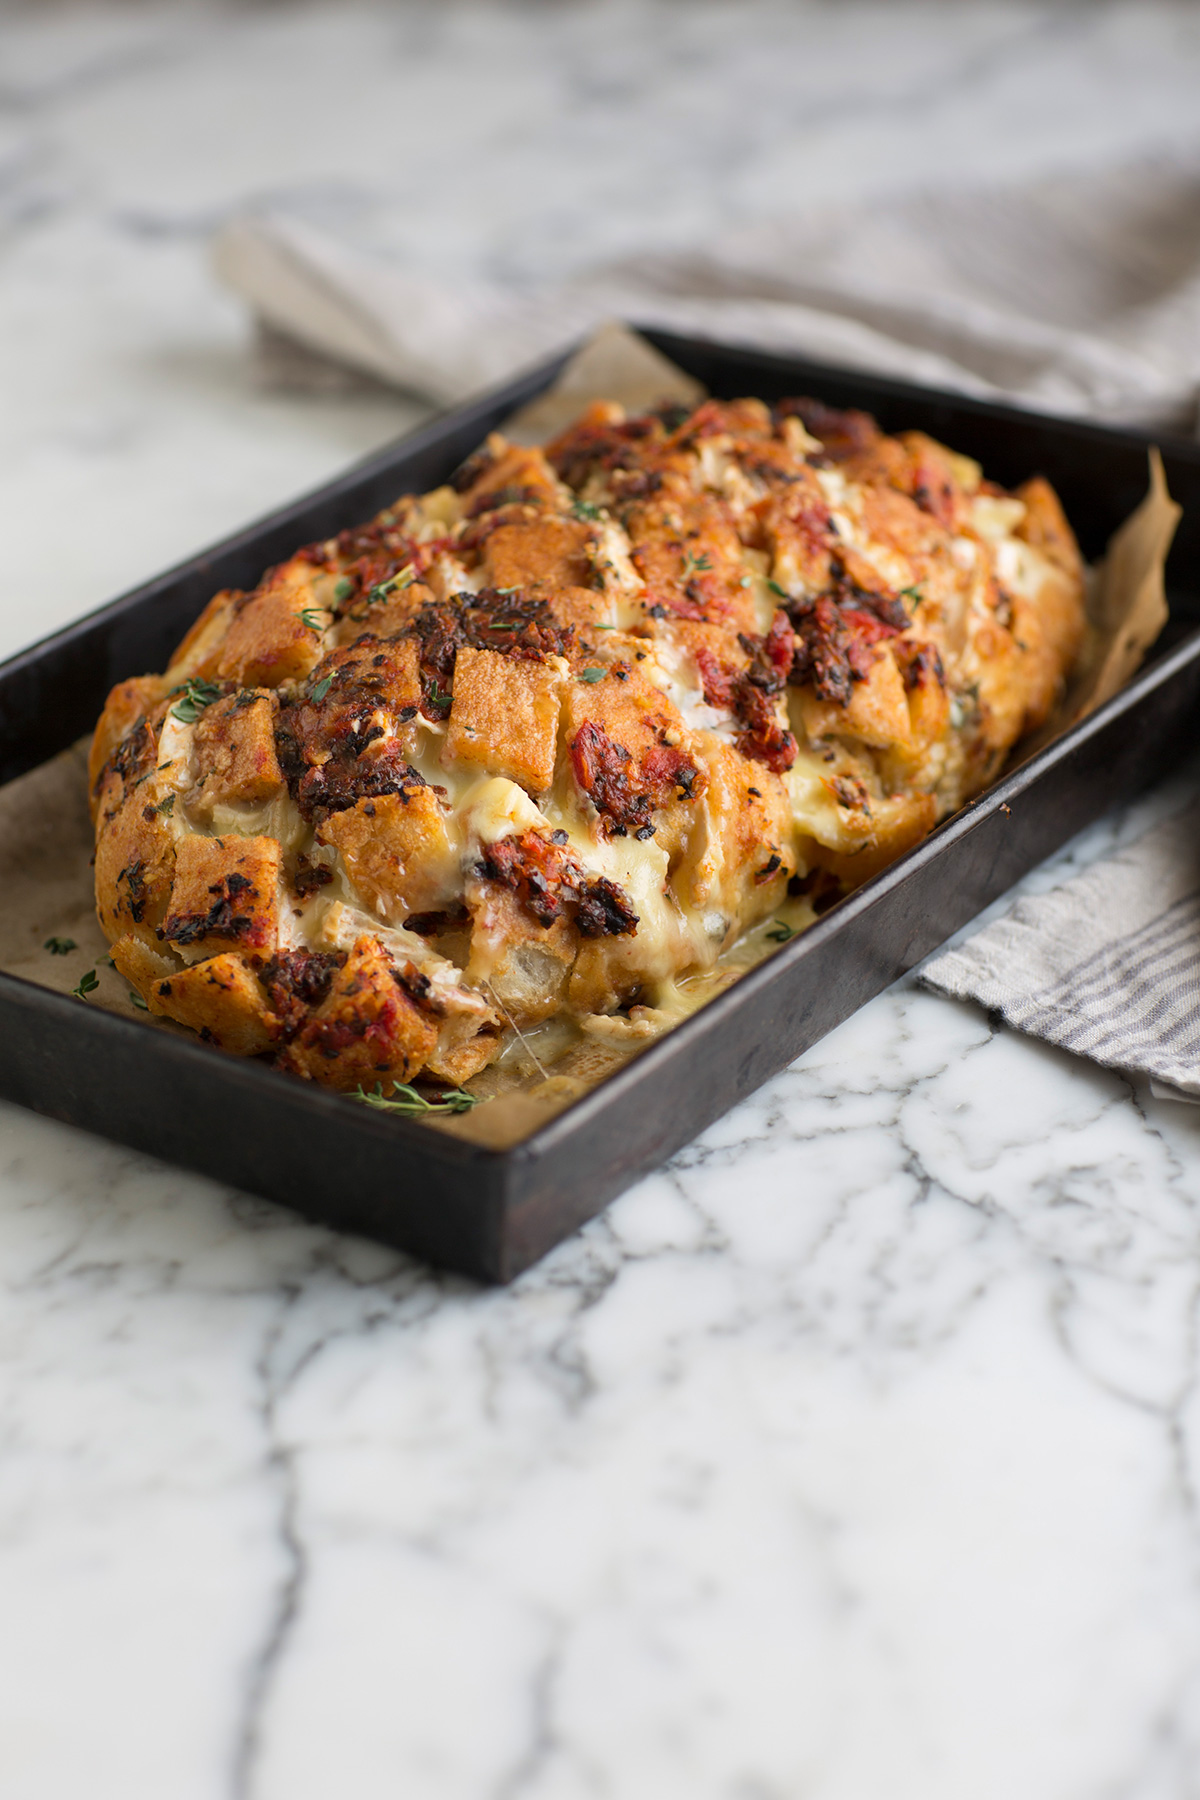 A delicious pull apart bread with Brie & sun-dried tomatoes